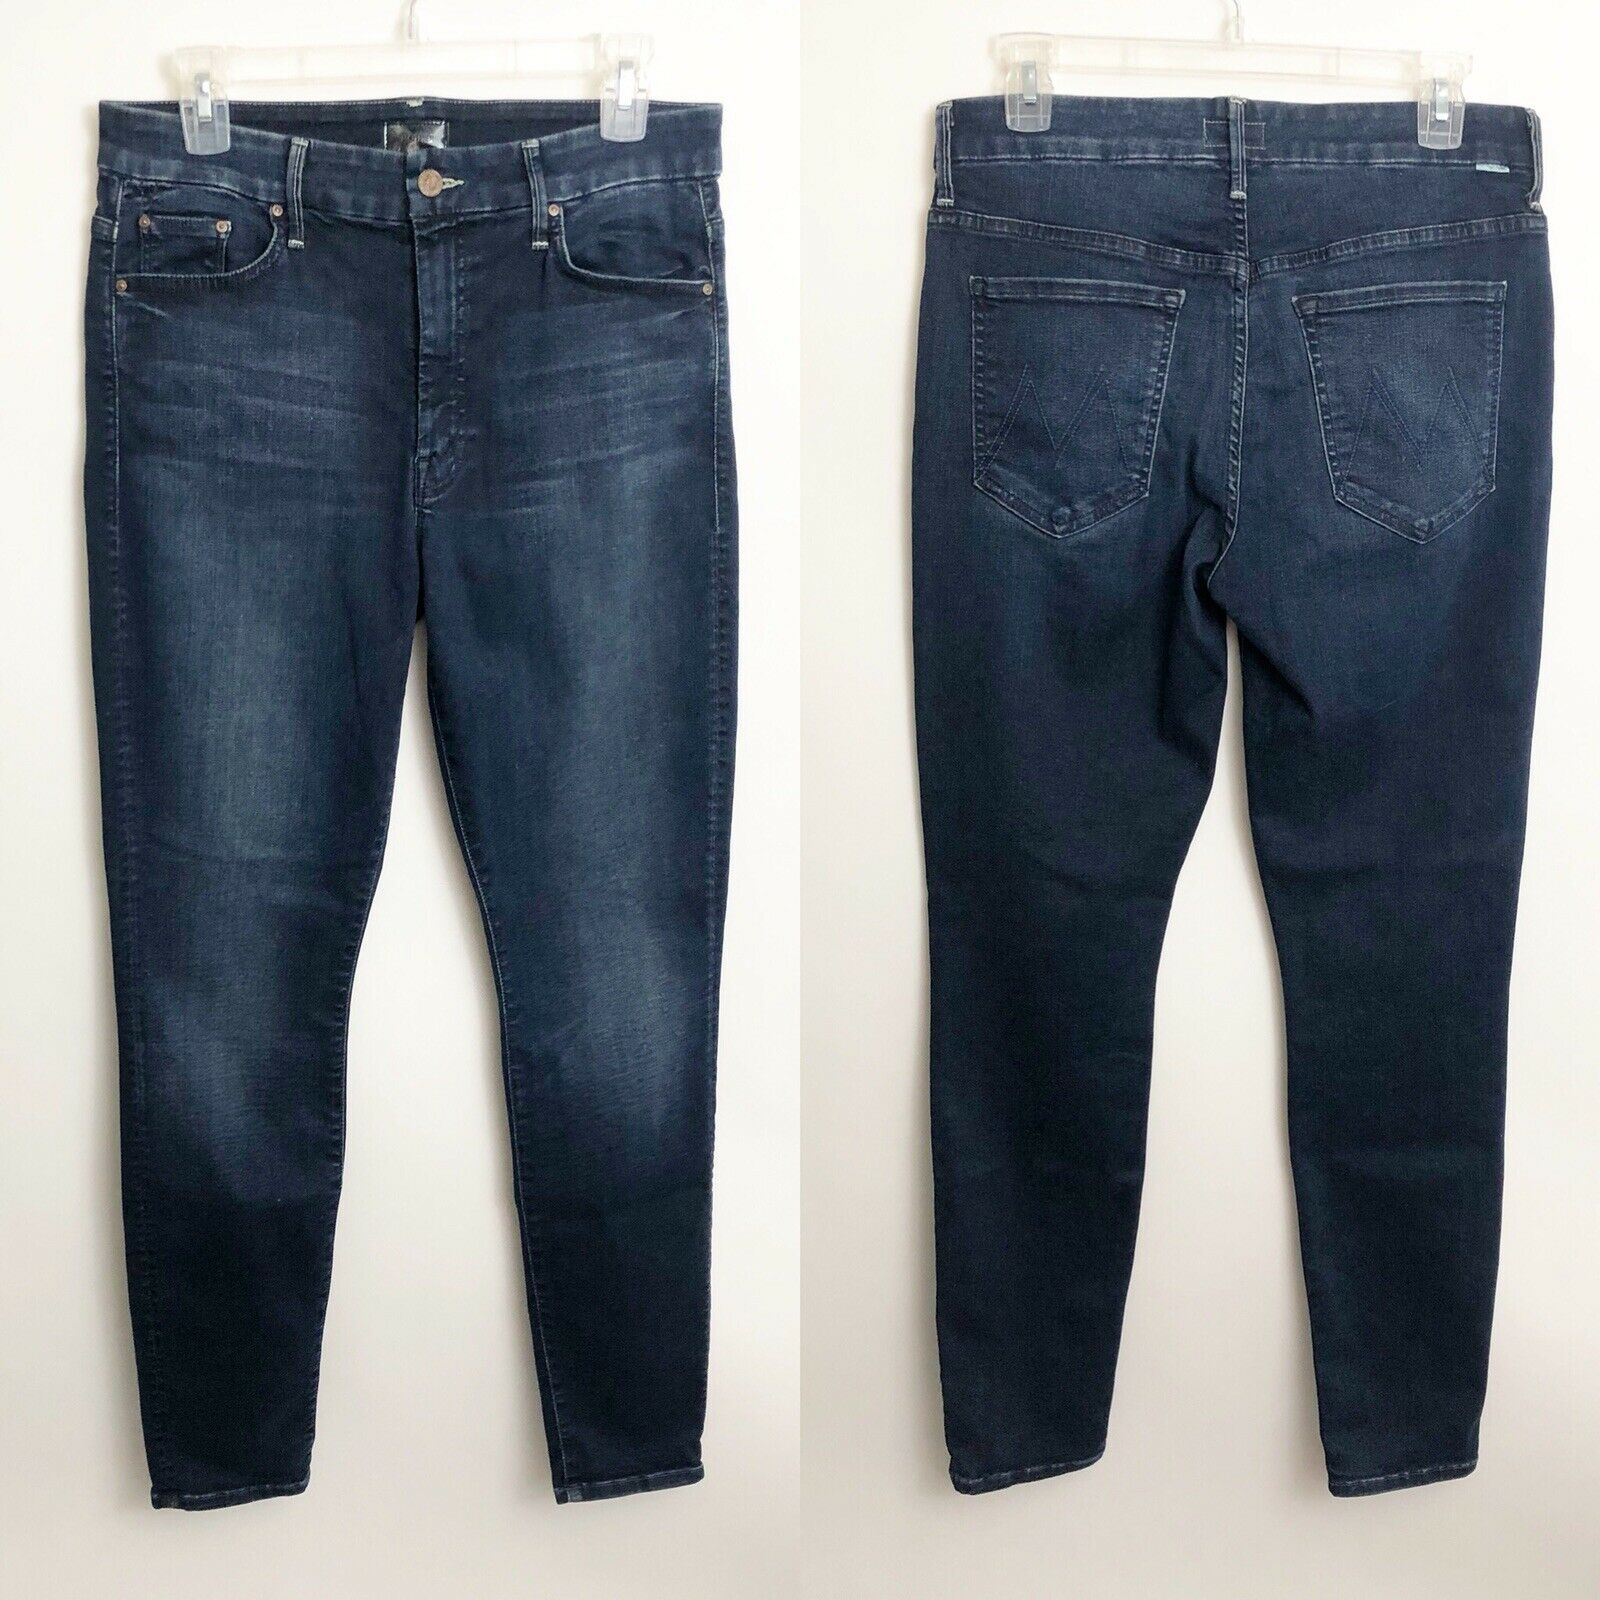 Mother de la alta  cintura Looker Jeans Tamaño 30 foto finish Skinny Dark Wash se desvaneció  diseños exclusivos